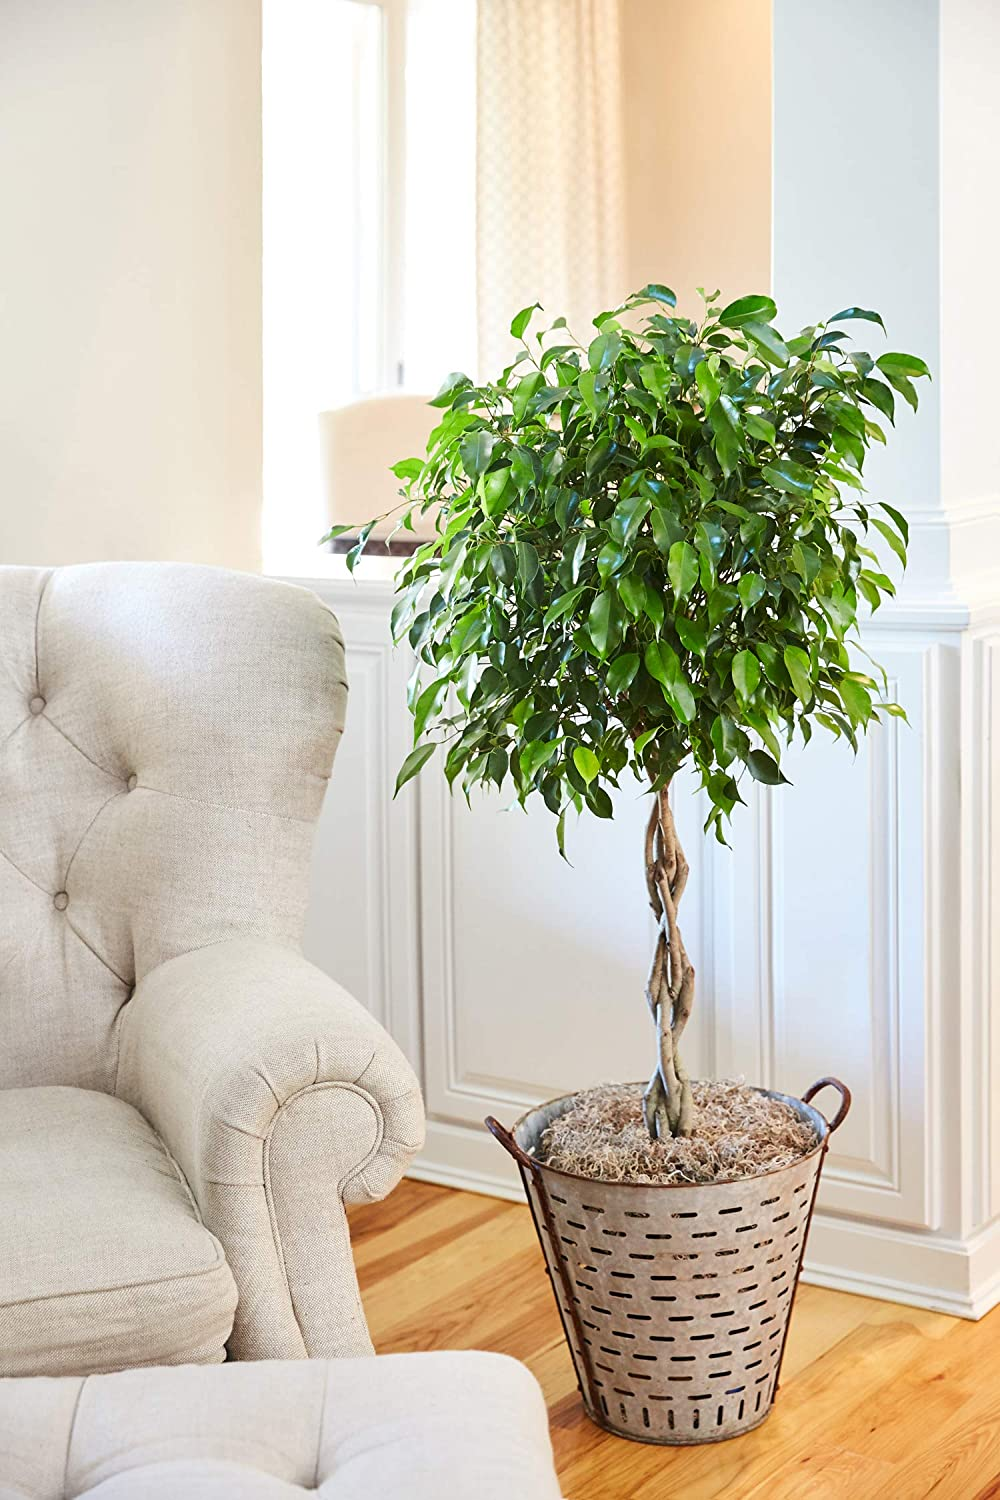 Amazon.com : Benjamina Ficus Tree  3 4 Feet Tall In 3 Gallon Pot  Unique  Potted Tree, Perfect As A Patio Plant Or Indoor Tree : Garden U0026 Outdoor